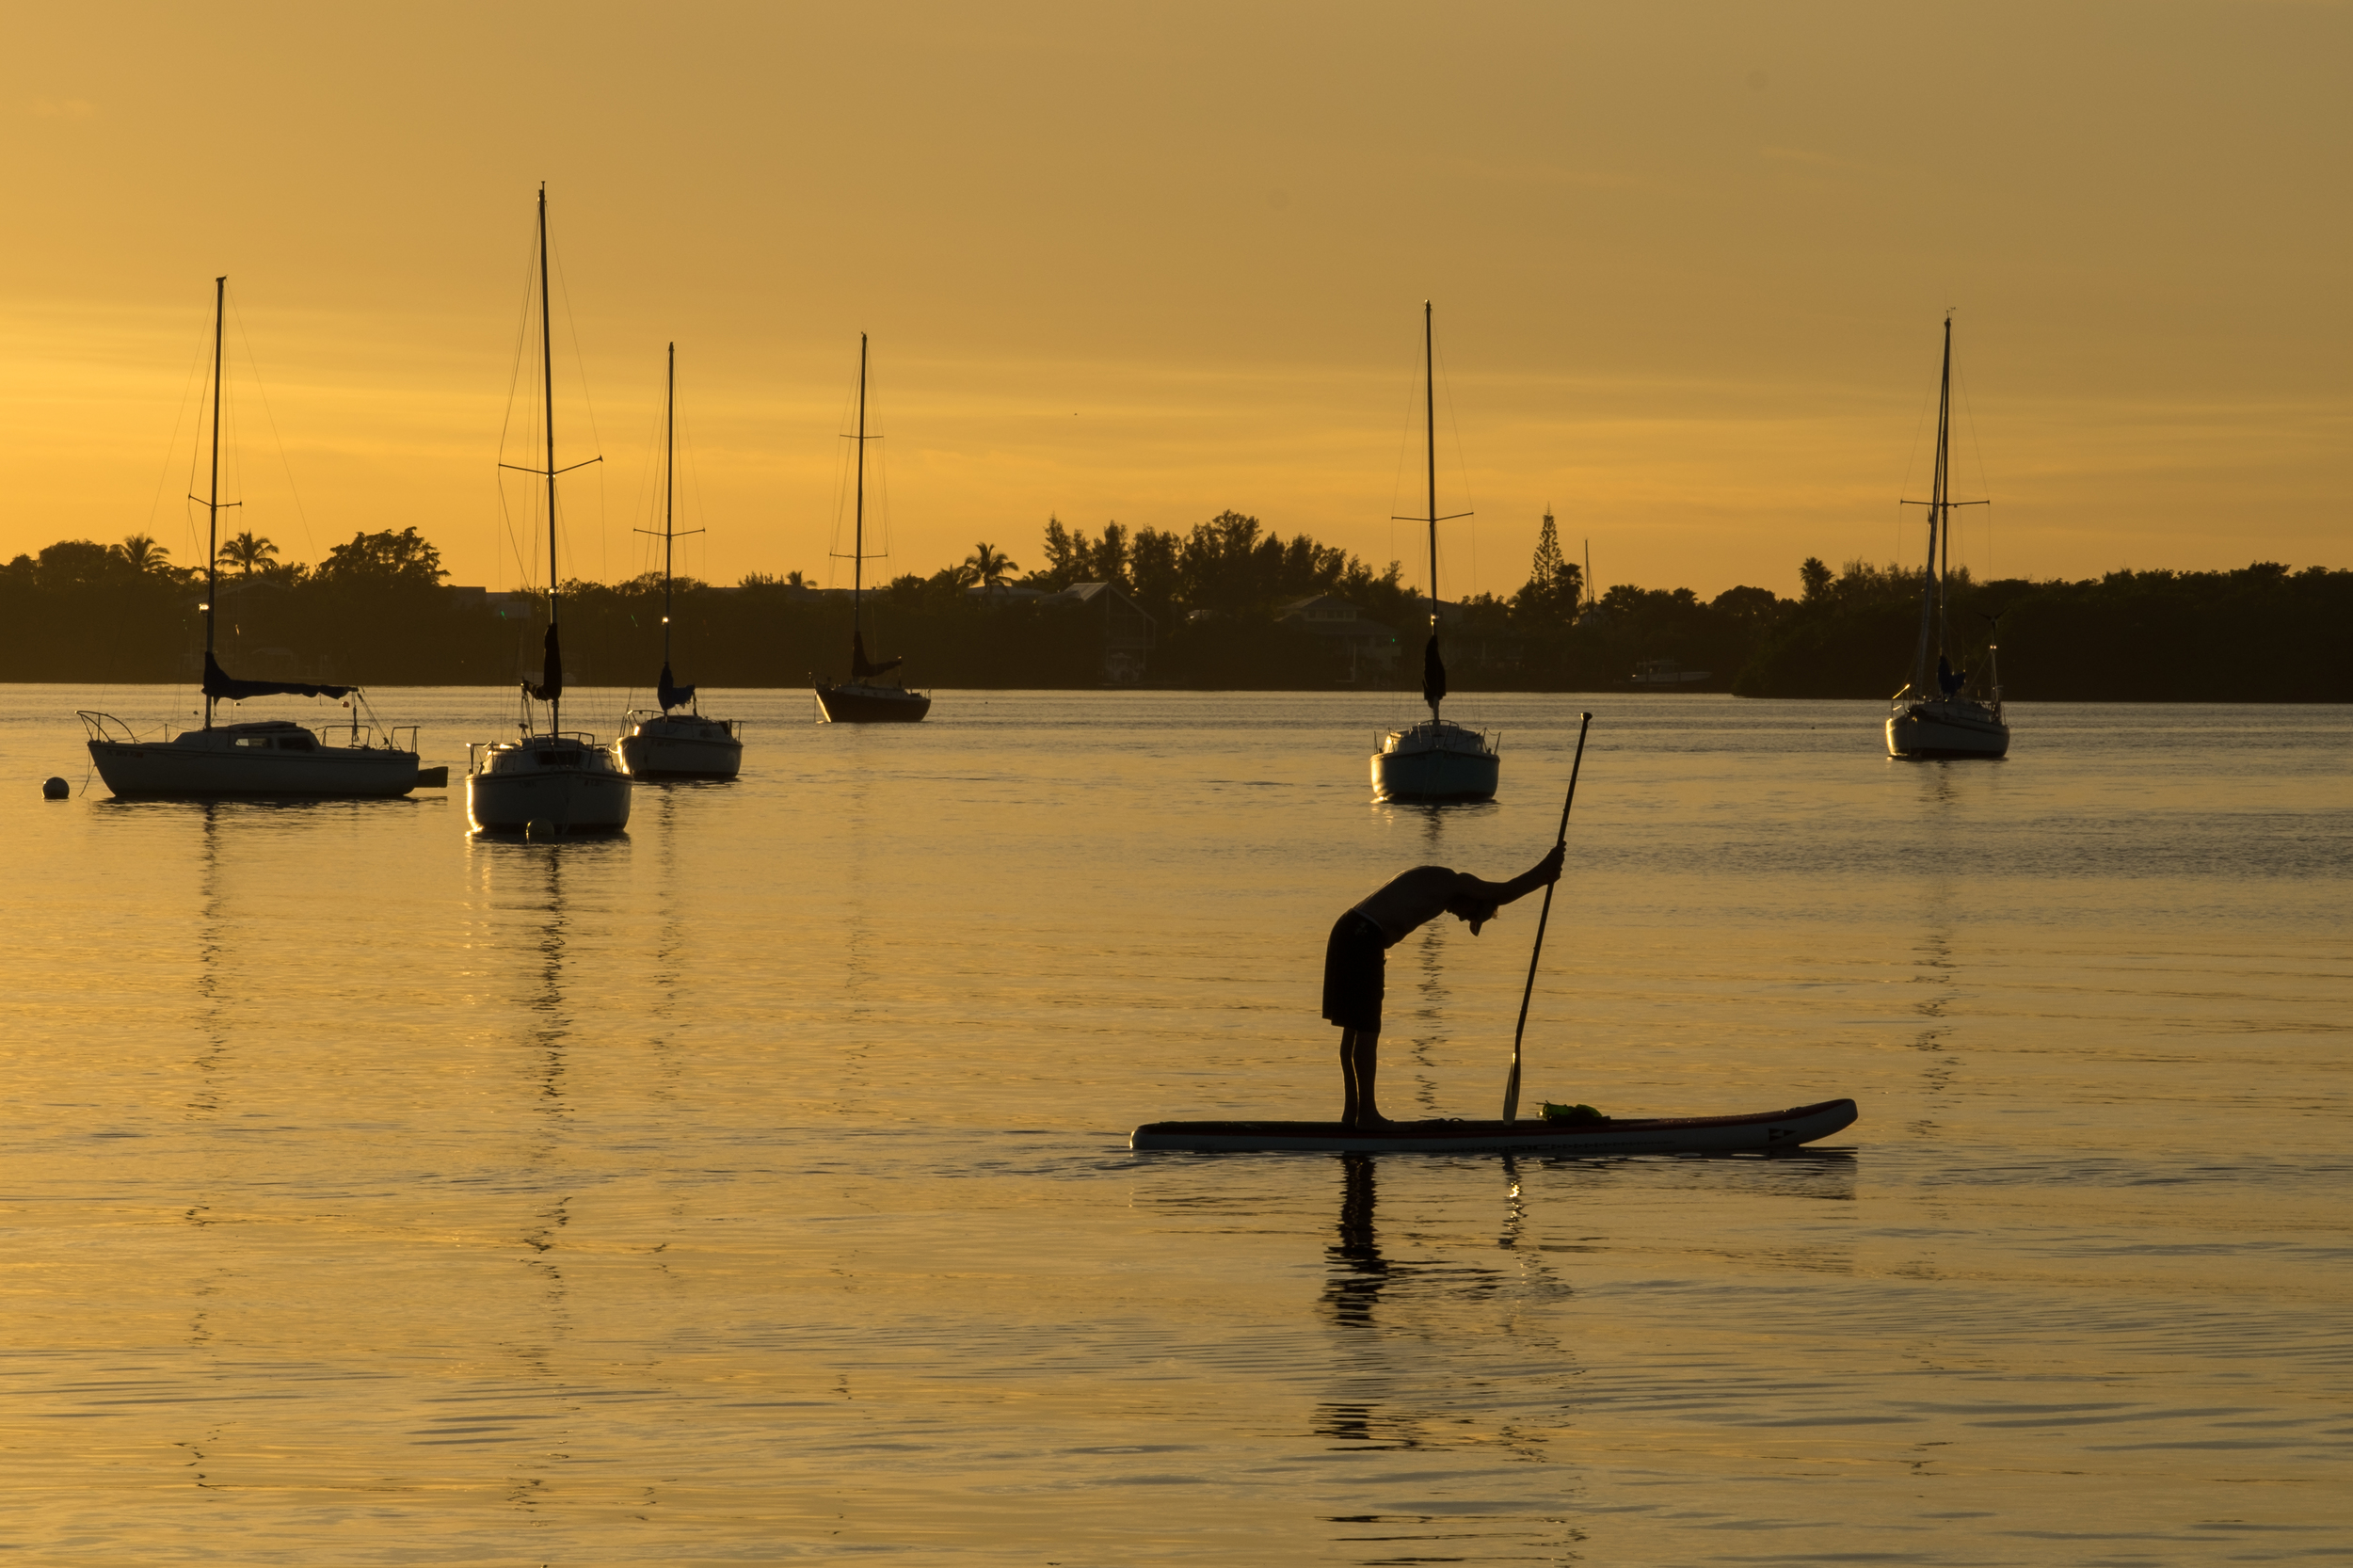 A prayer or a stretch? A paddleboarder takes a moment to reflect before continuing on.